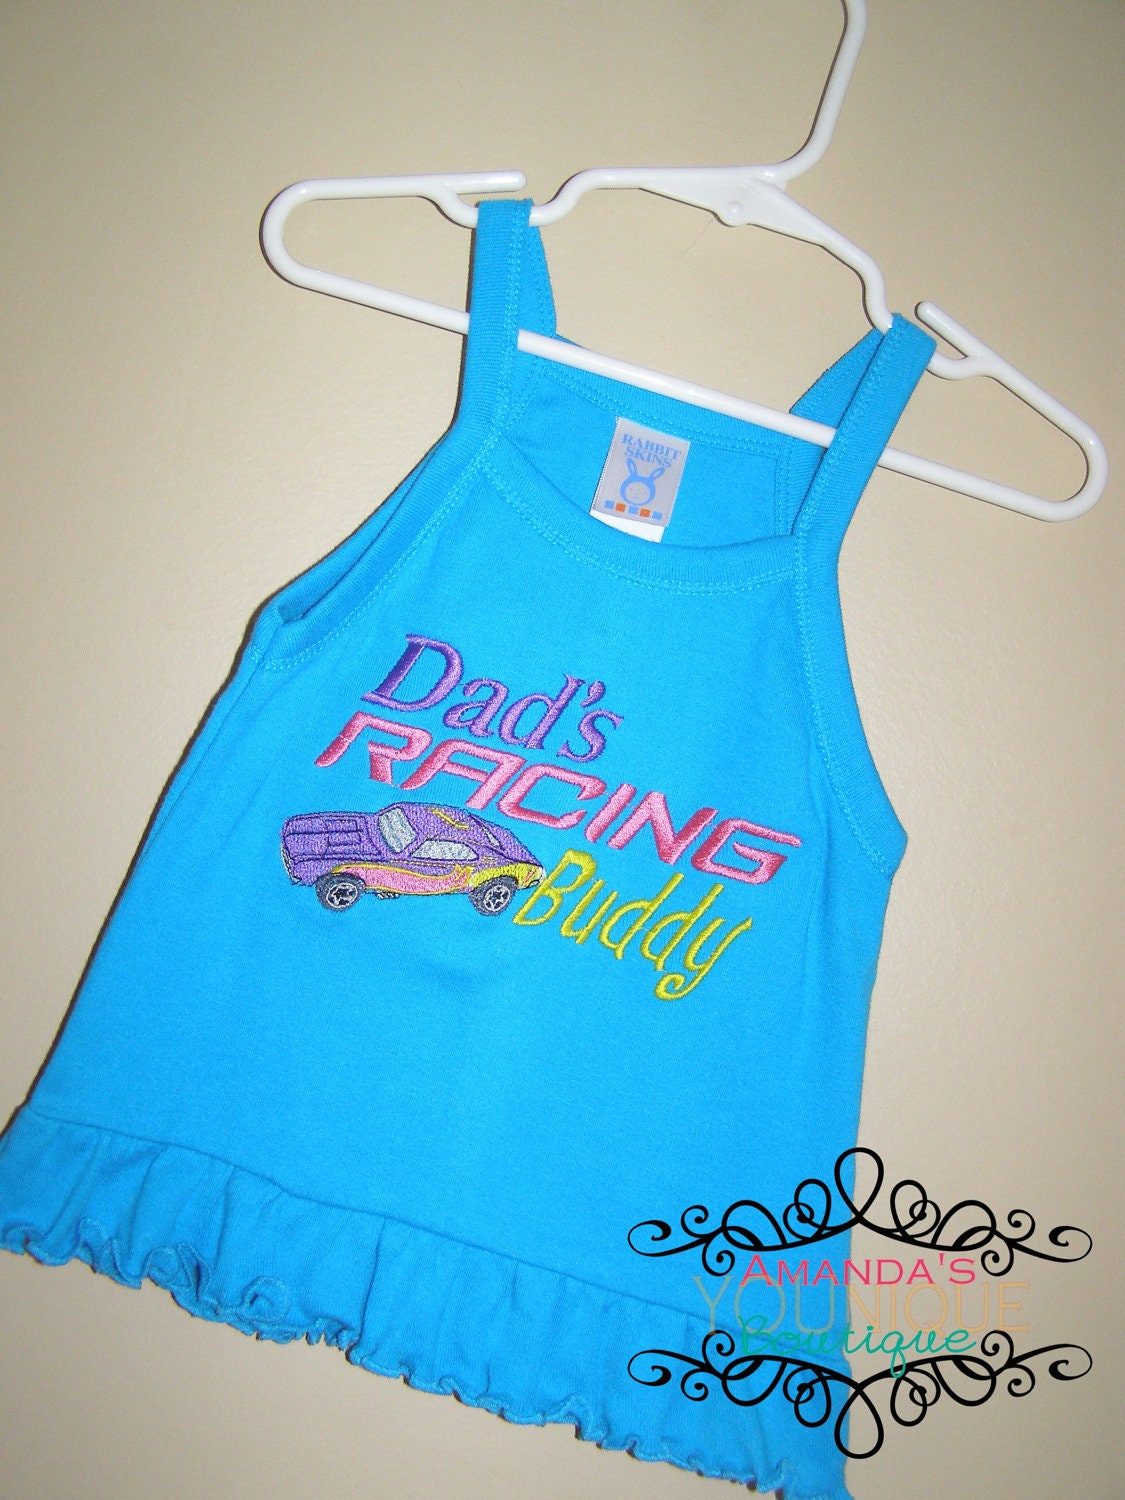 Dad s racing buddy embroidered shirt by ayboutique on etsy